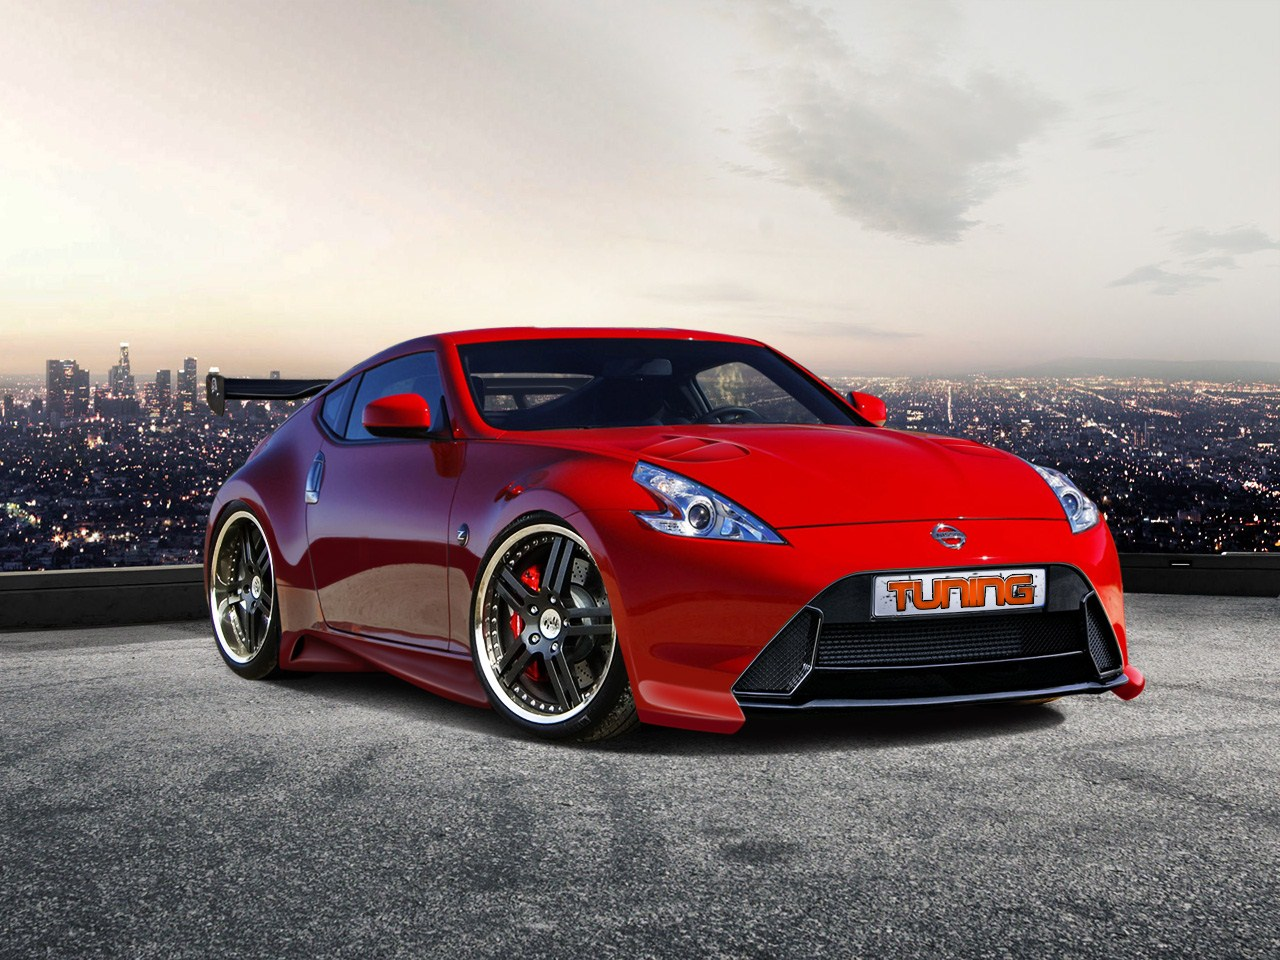 2015 Nissan Z HD Images | 2018 HD Cars Wallpapers